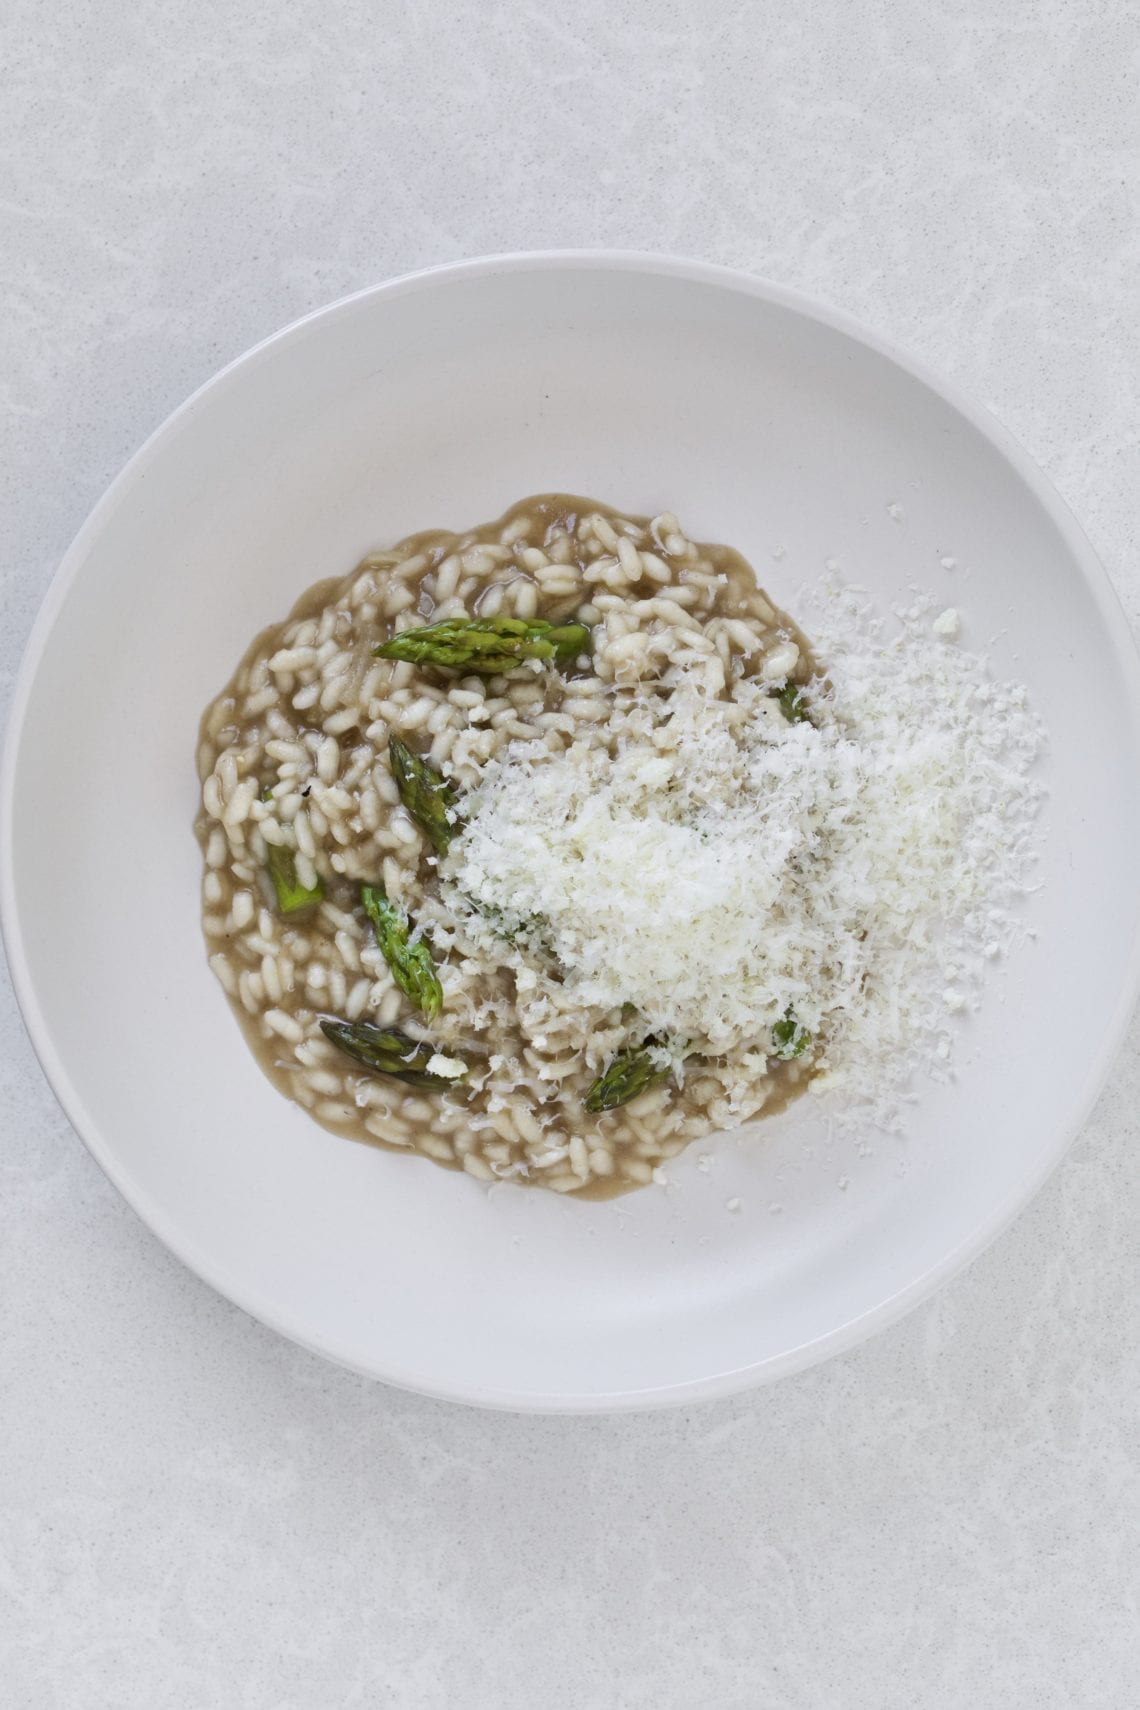 Asparagus Risotto with mushroom broth and parmigiano cheese